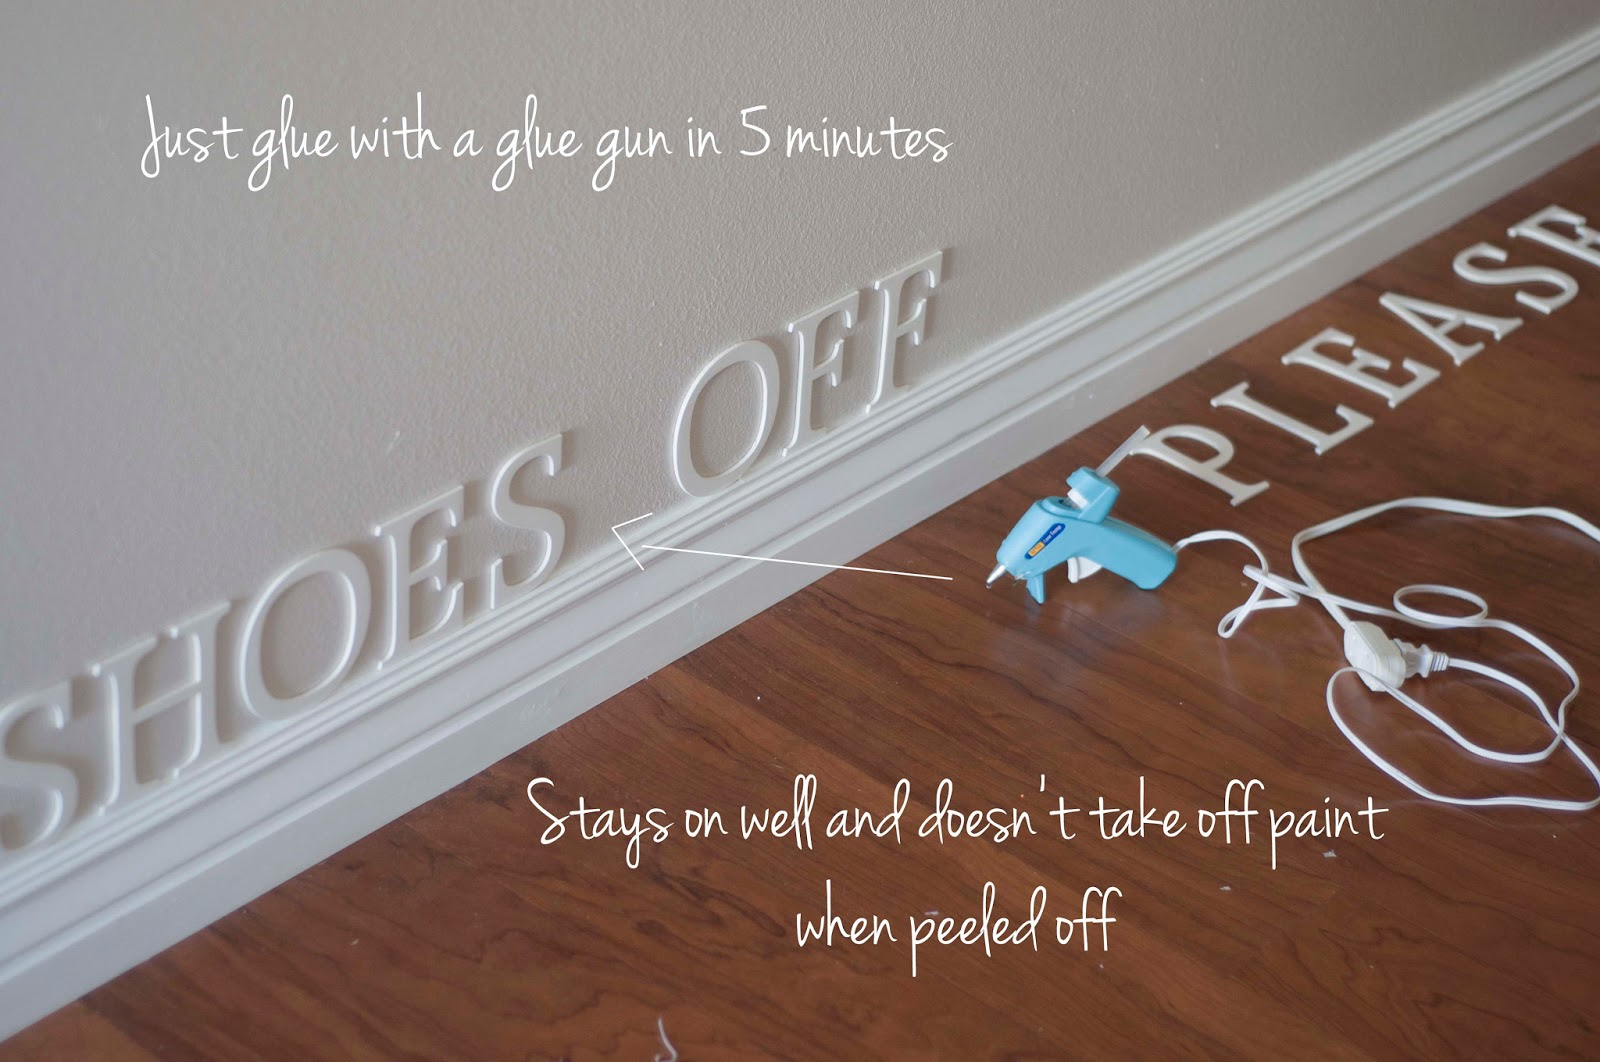 Shoes Off Please cutouts on floor, via A Few of My Favorite Things